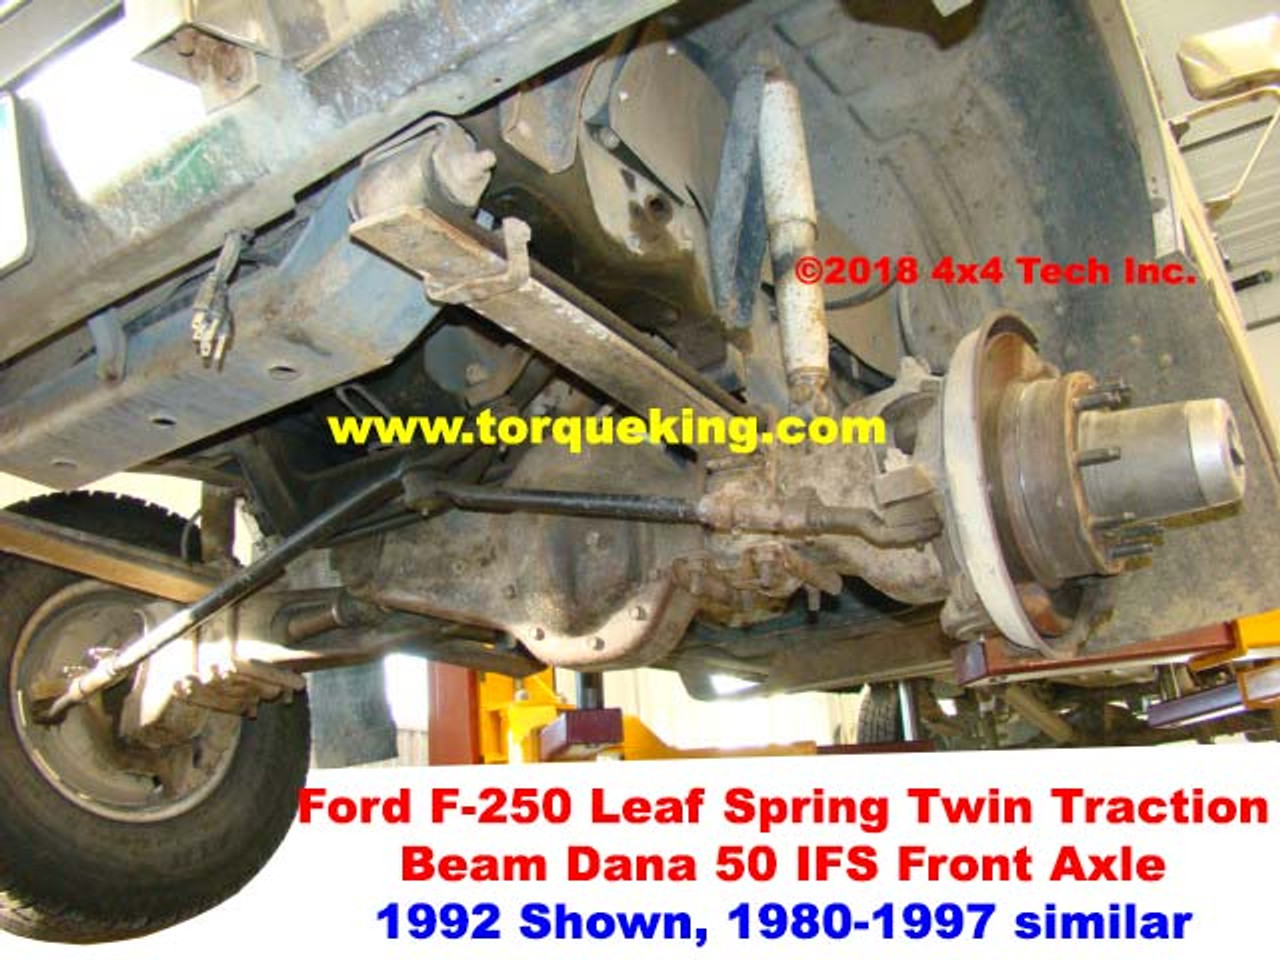 F250 4x4 Front Axle Diagram 1997 Trusted Wiring. 1980 1997 Ford Dana 50 Ifs Front Axle Id F250 Suspension Diagram 4x4. Ford. 2008 Ford Dana 50 Front Axle Diagram At Scoala.co